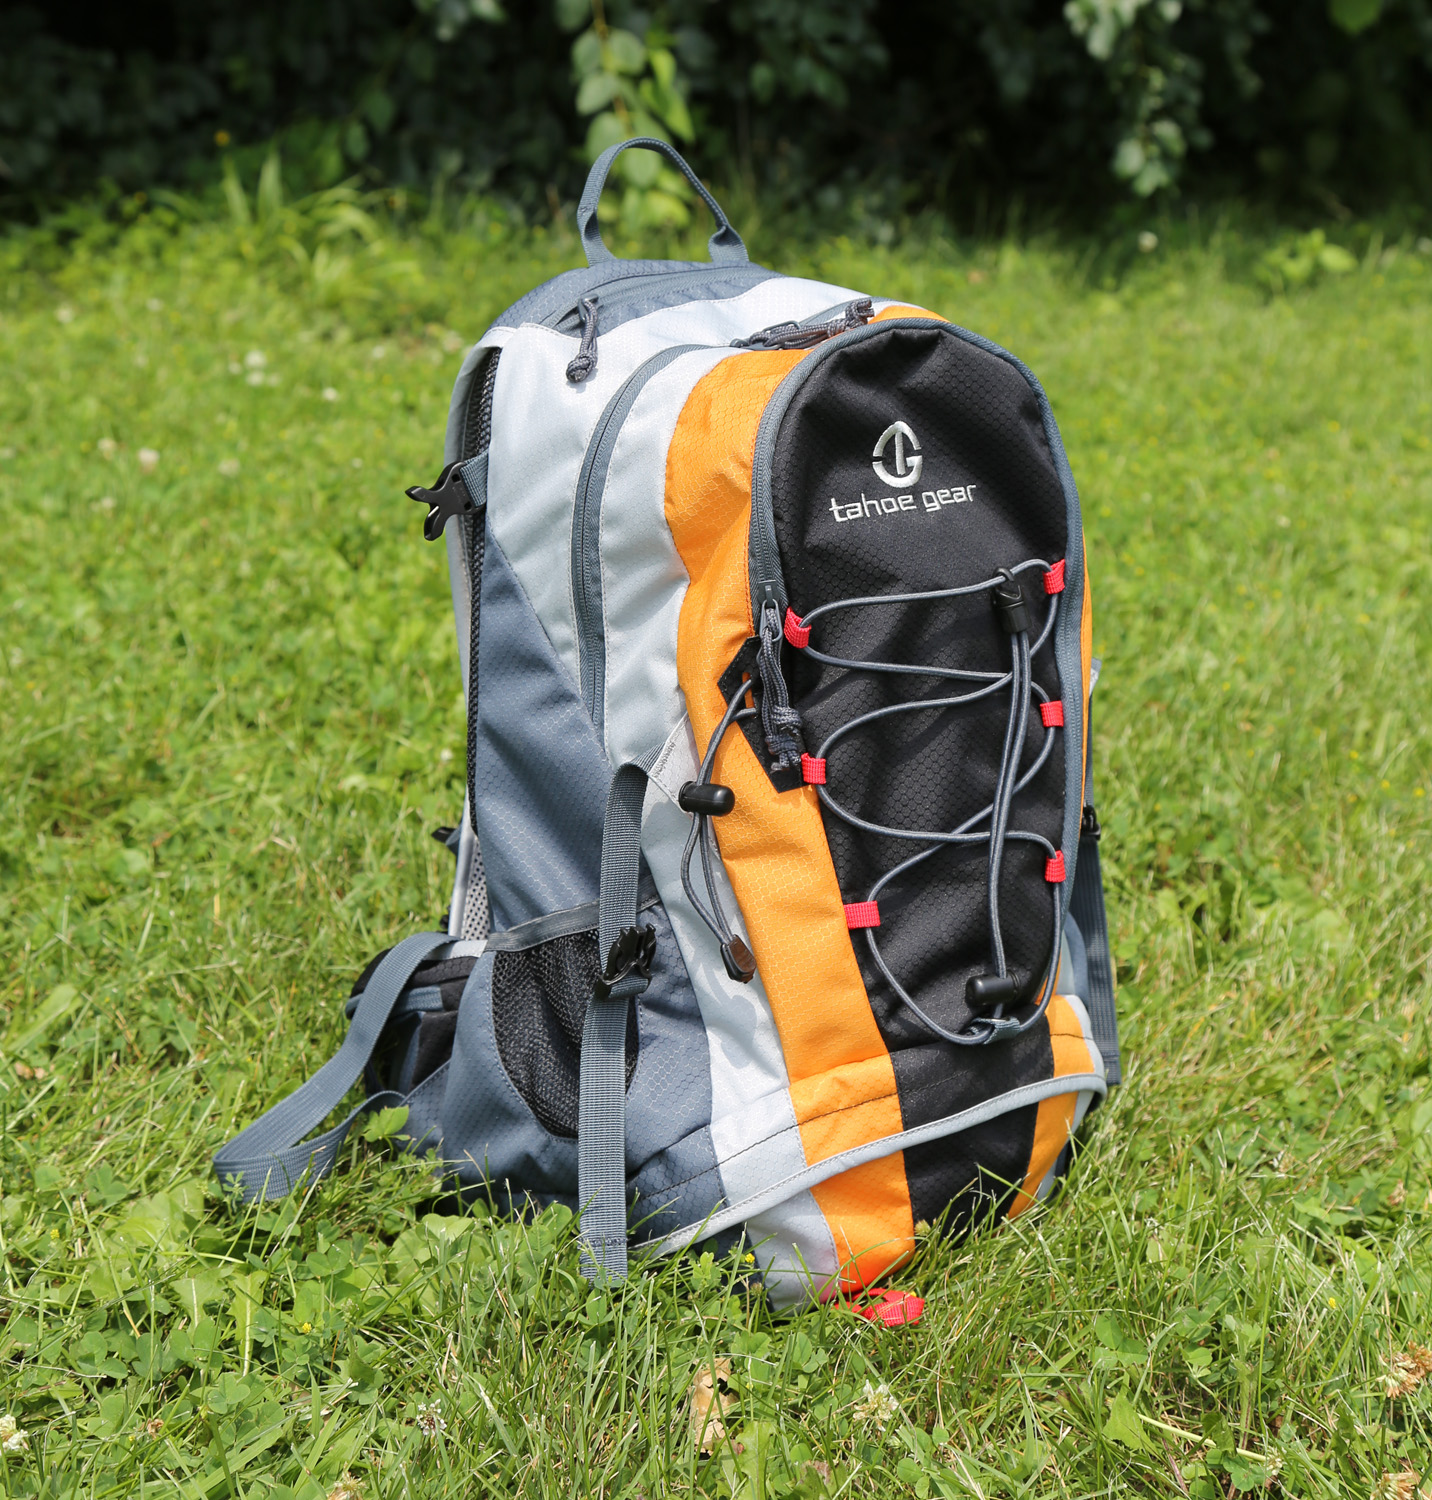 Tahoe Gear Napa 25L Backpack